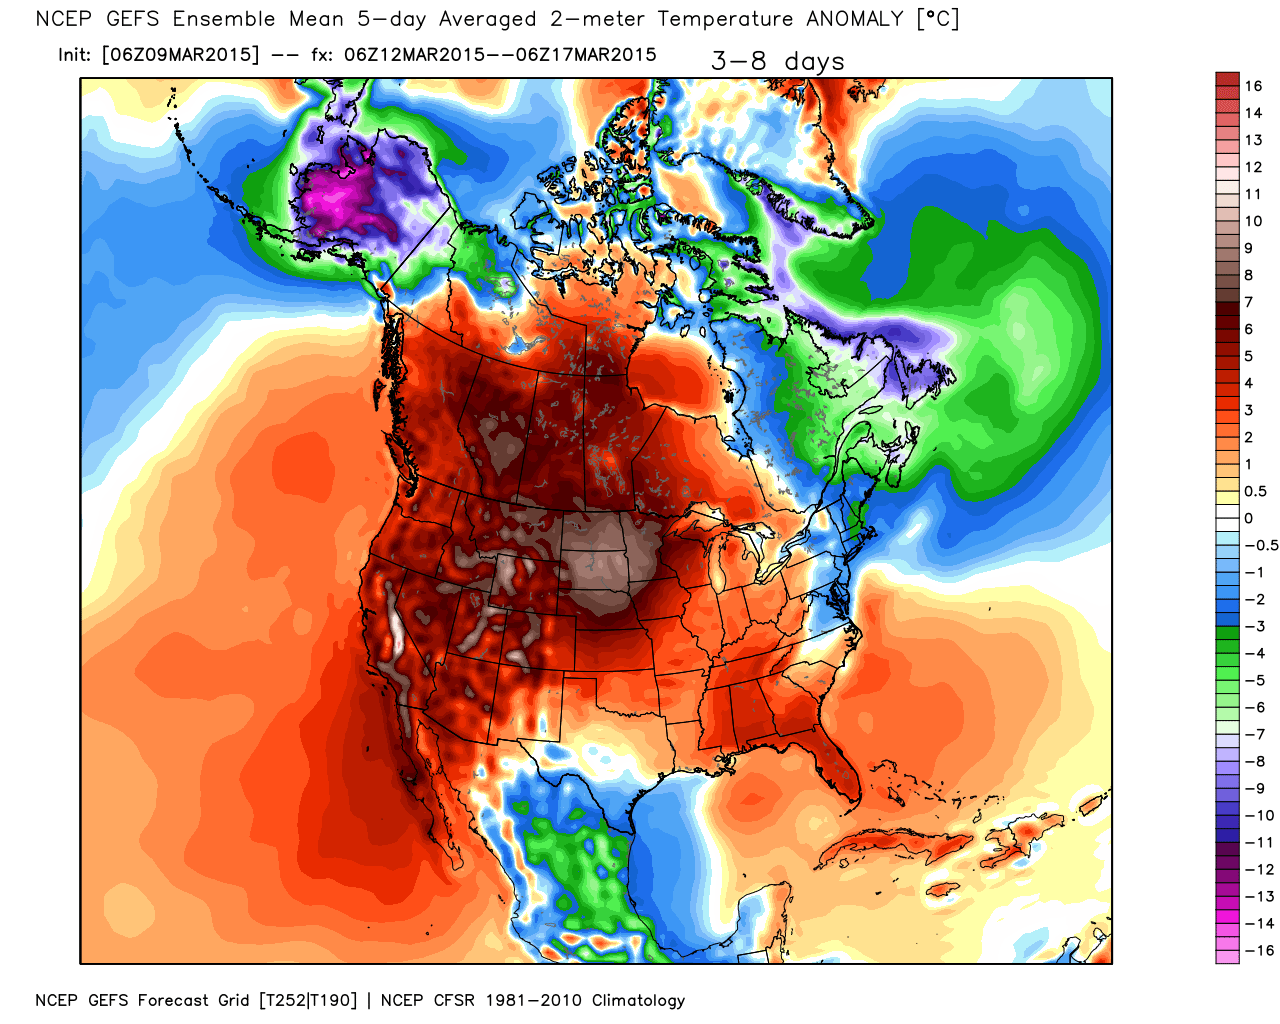 Projected Temperature Anomalies March 12 to 17